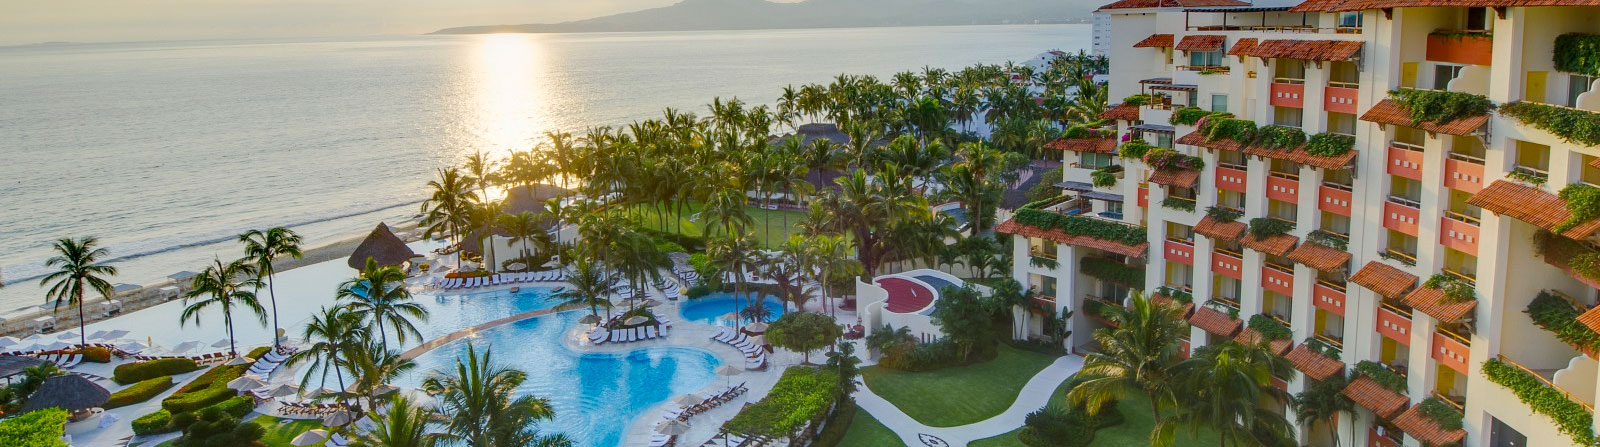 Grand Velas Riviera Nayarit Destinations Mexico